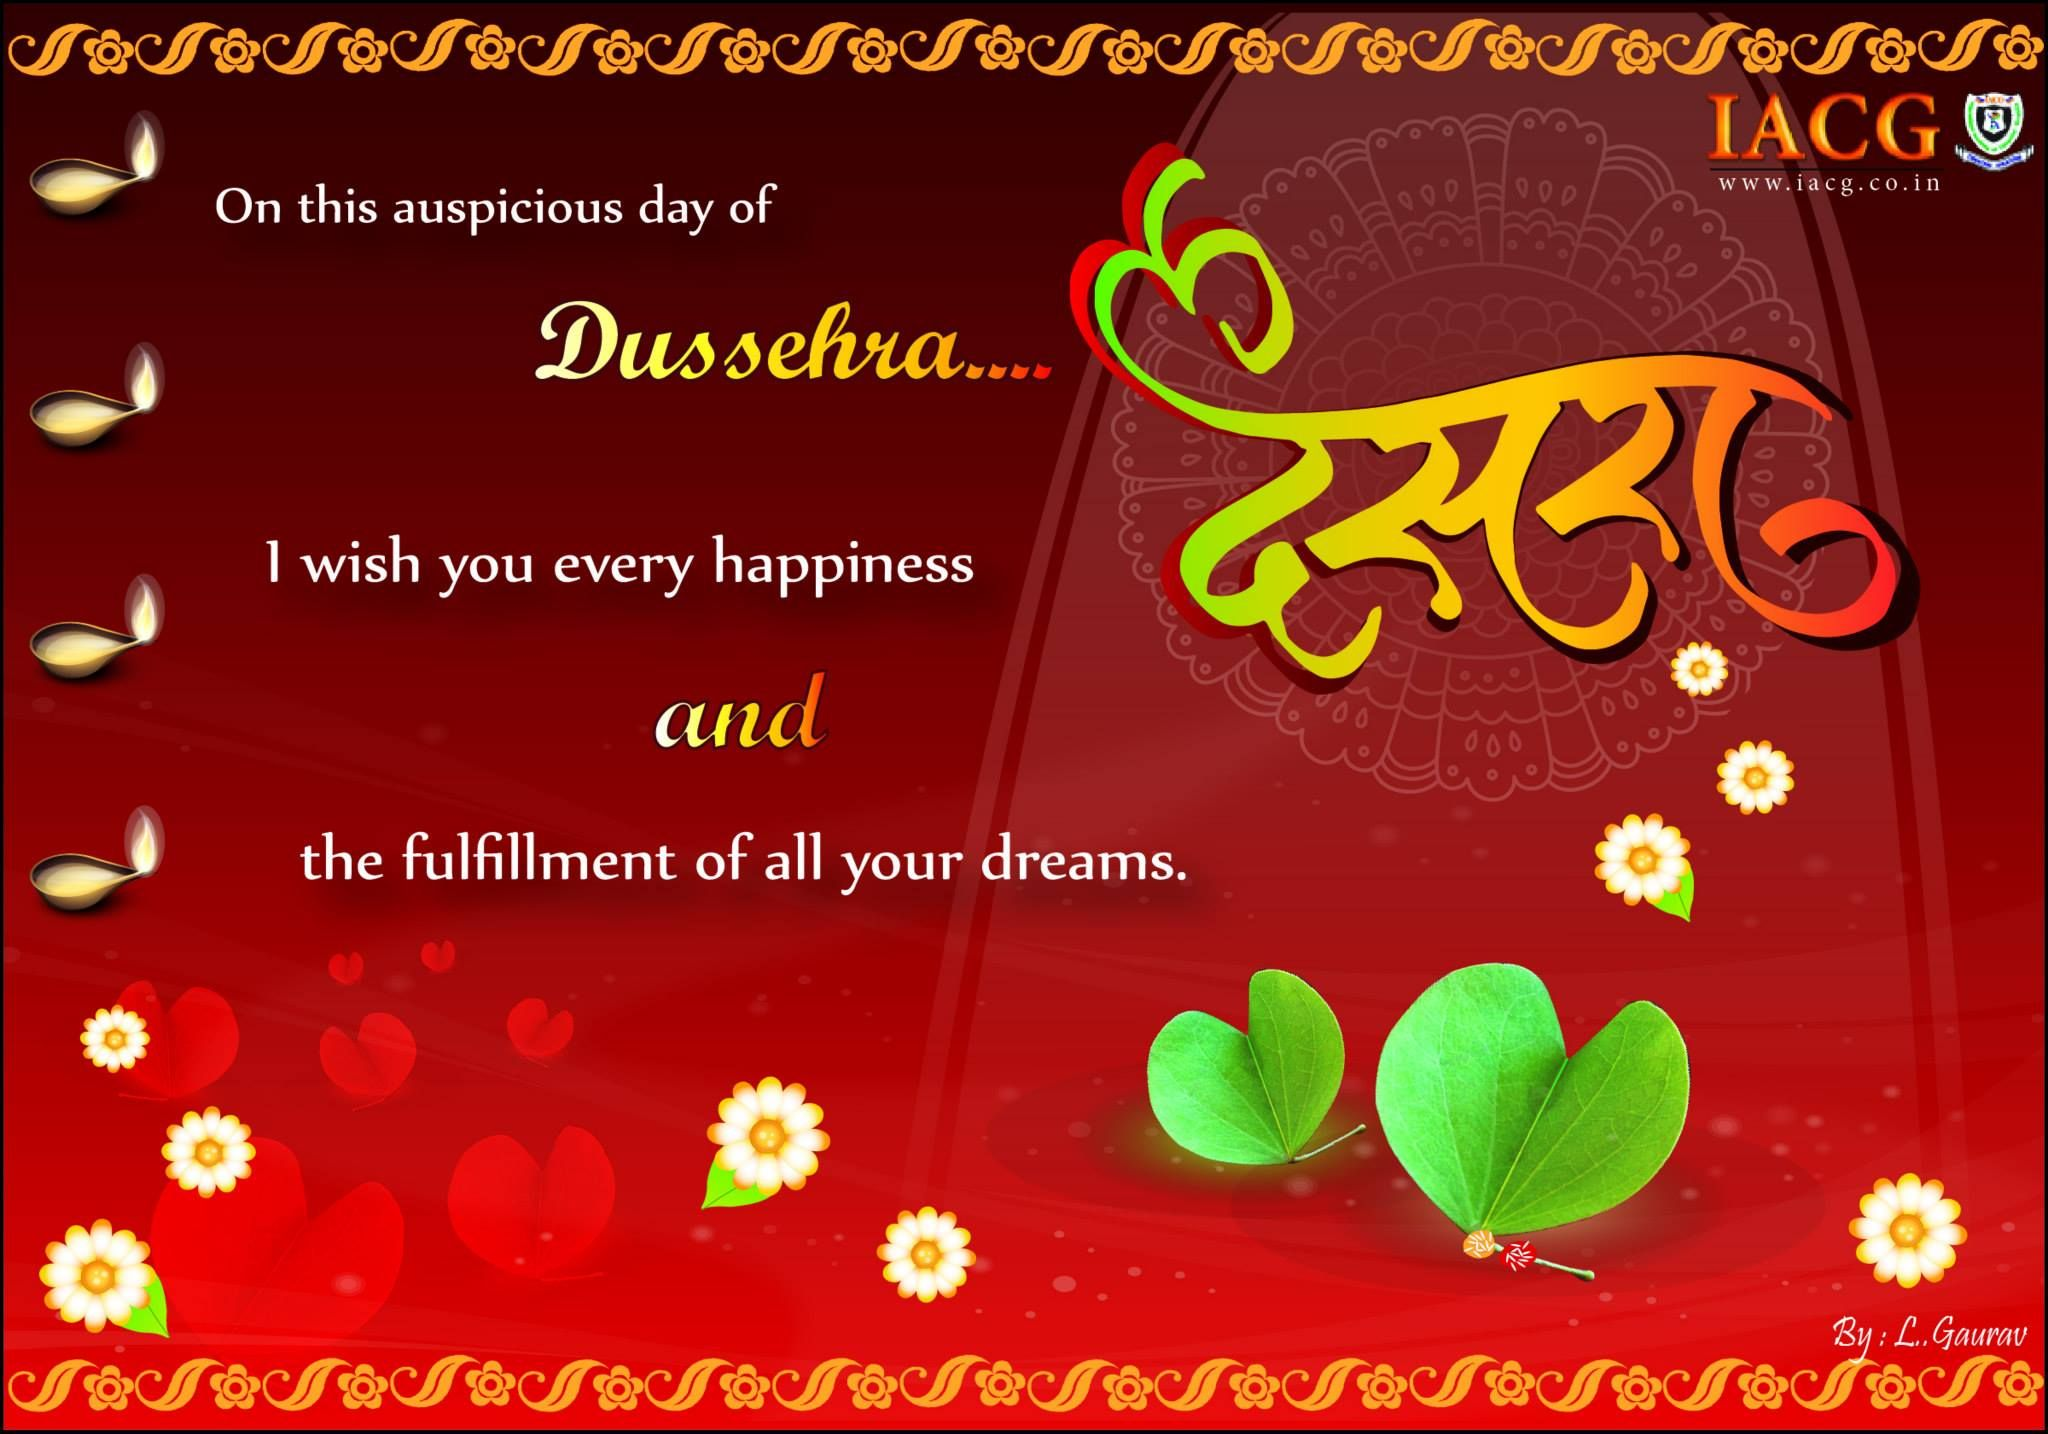 Dussehra greeting cards done by iacg students dusshera greeting dussehra greeting cards done by iacg students m4hsunfo